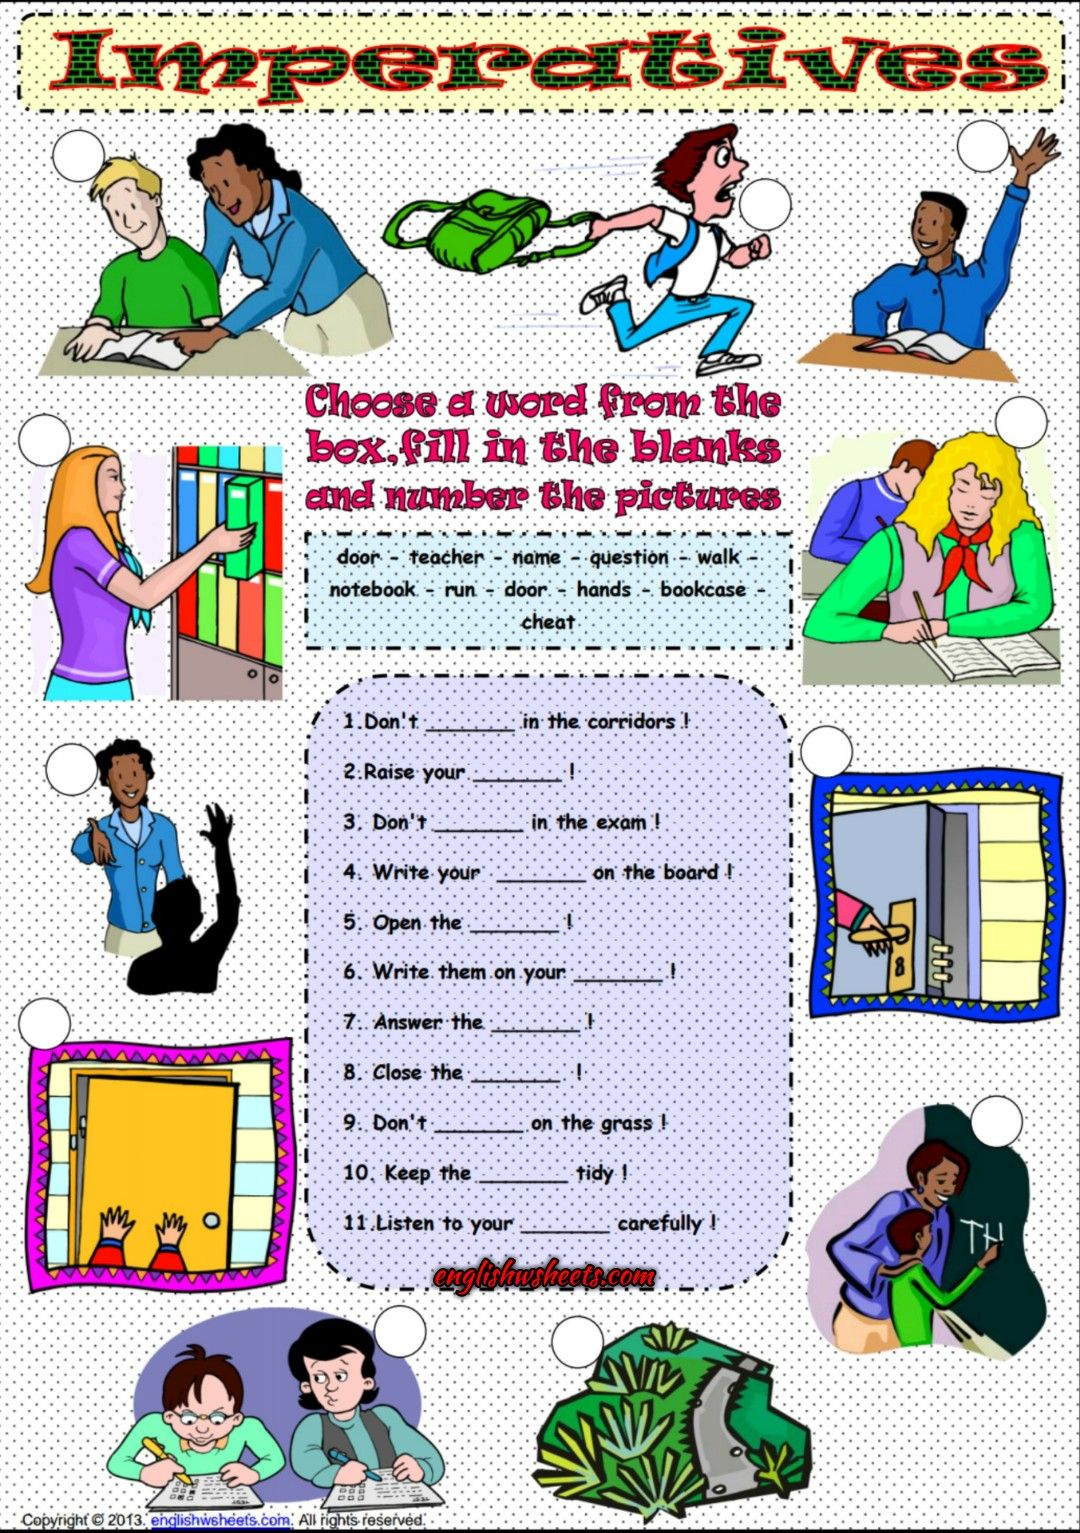 Imperative Mood Esl Grammar Exercises Worksheet Com